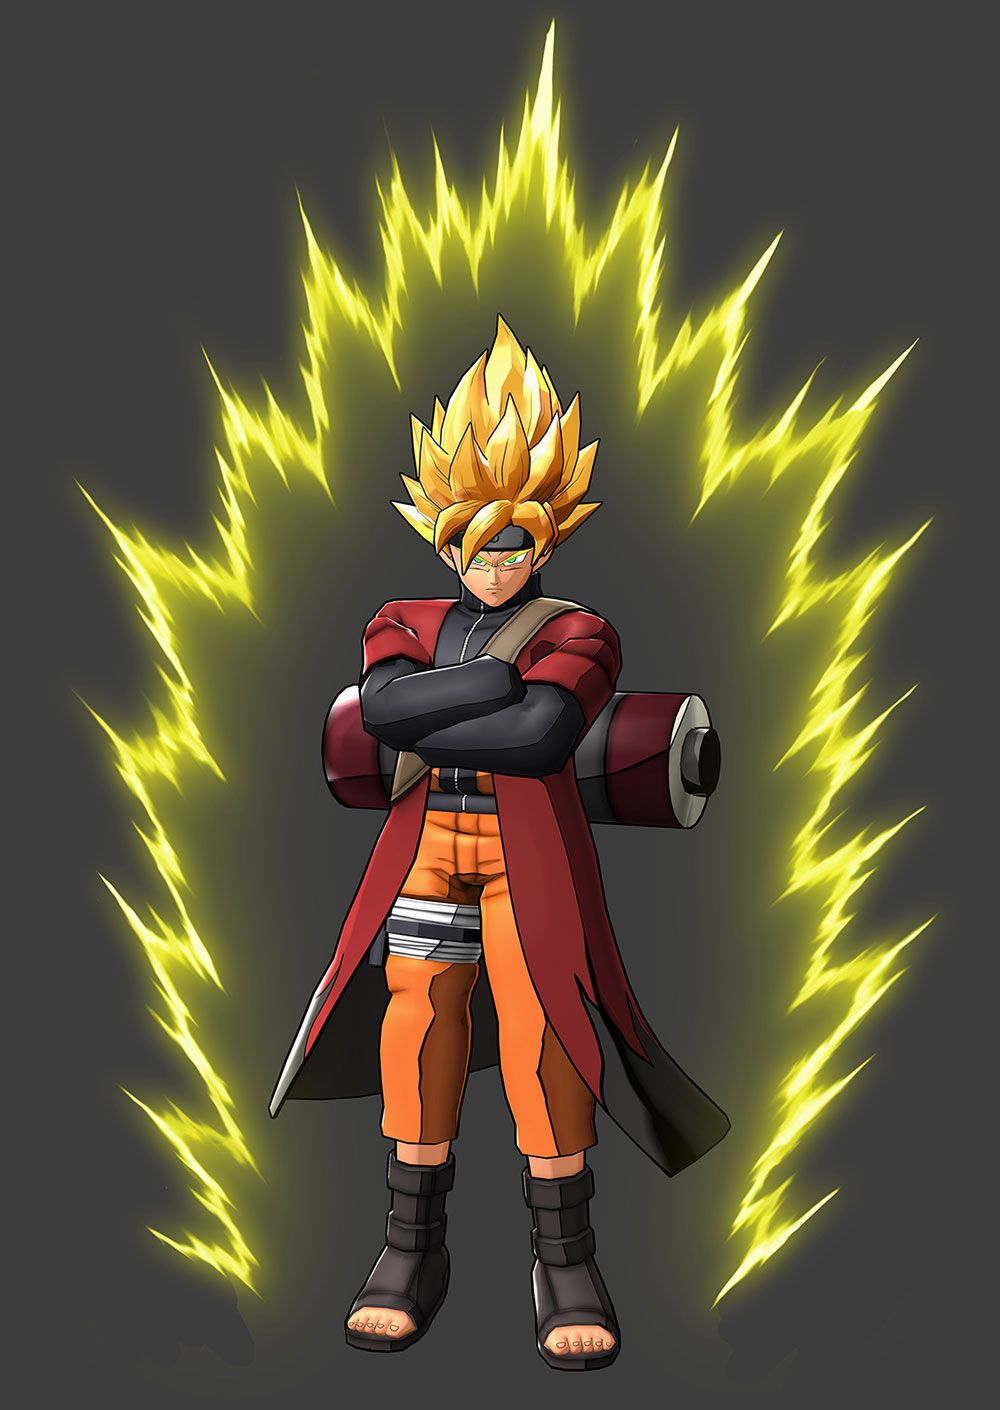 Goku naruto uzumaki sage mode costume dragon ball z - Naruto and dragonball z ...